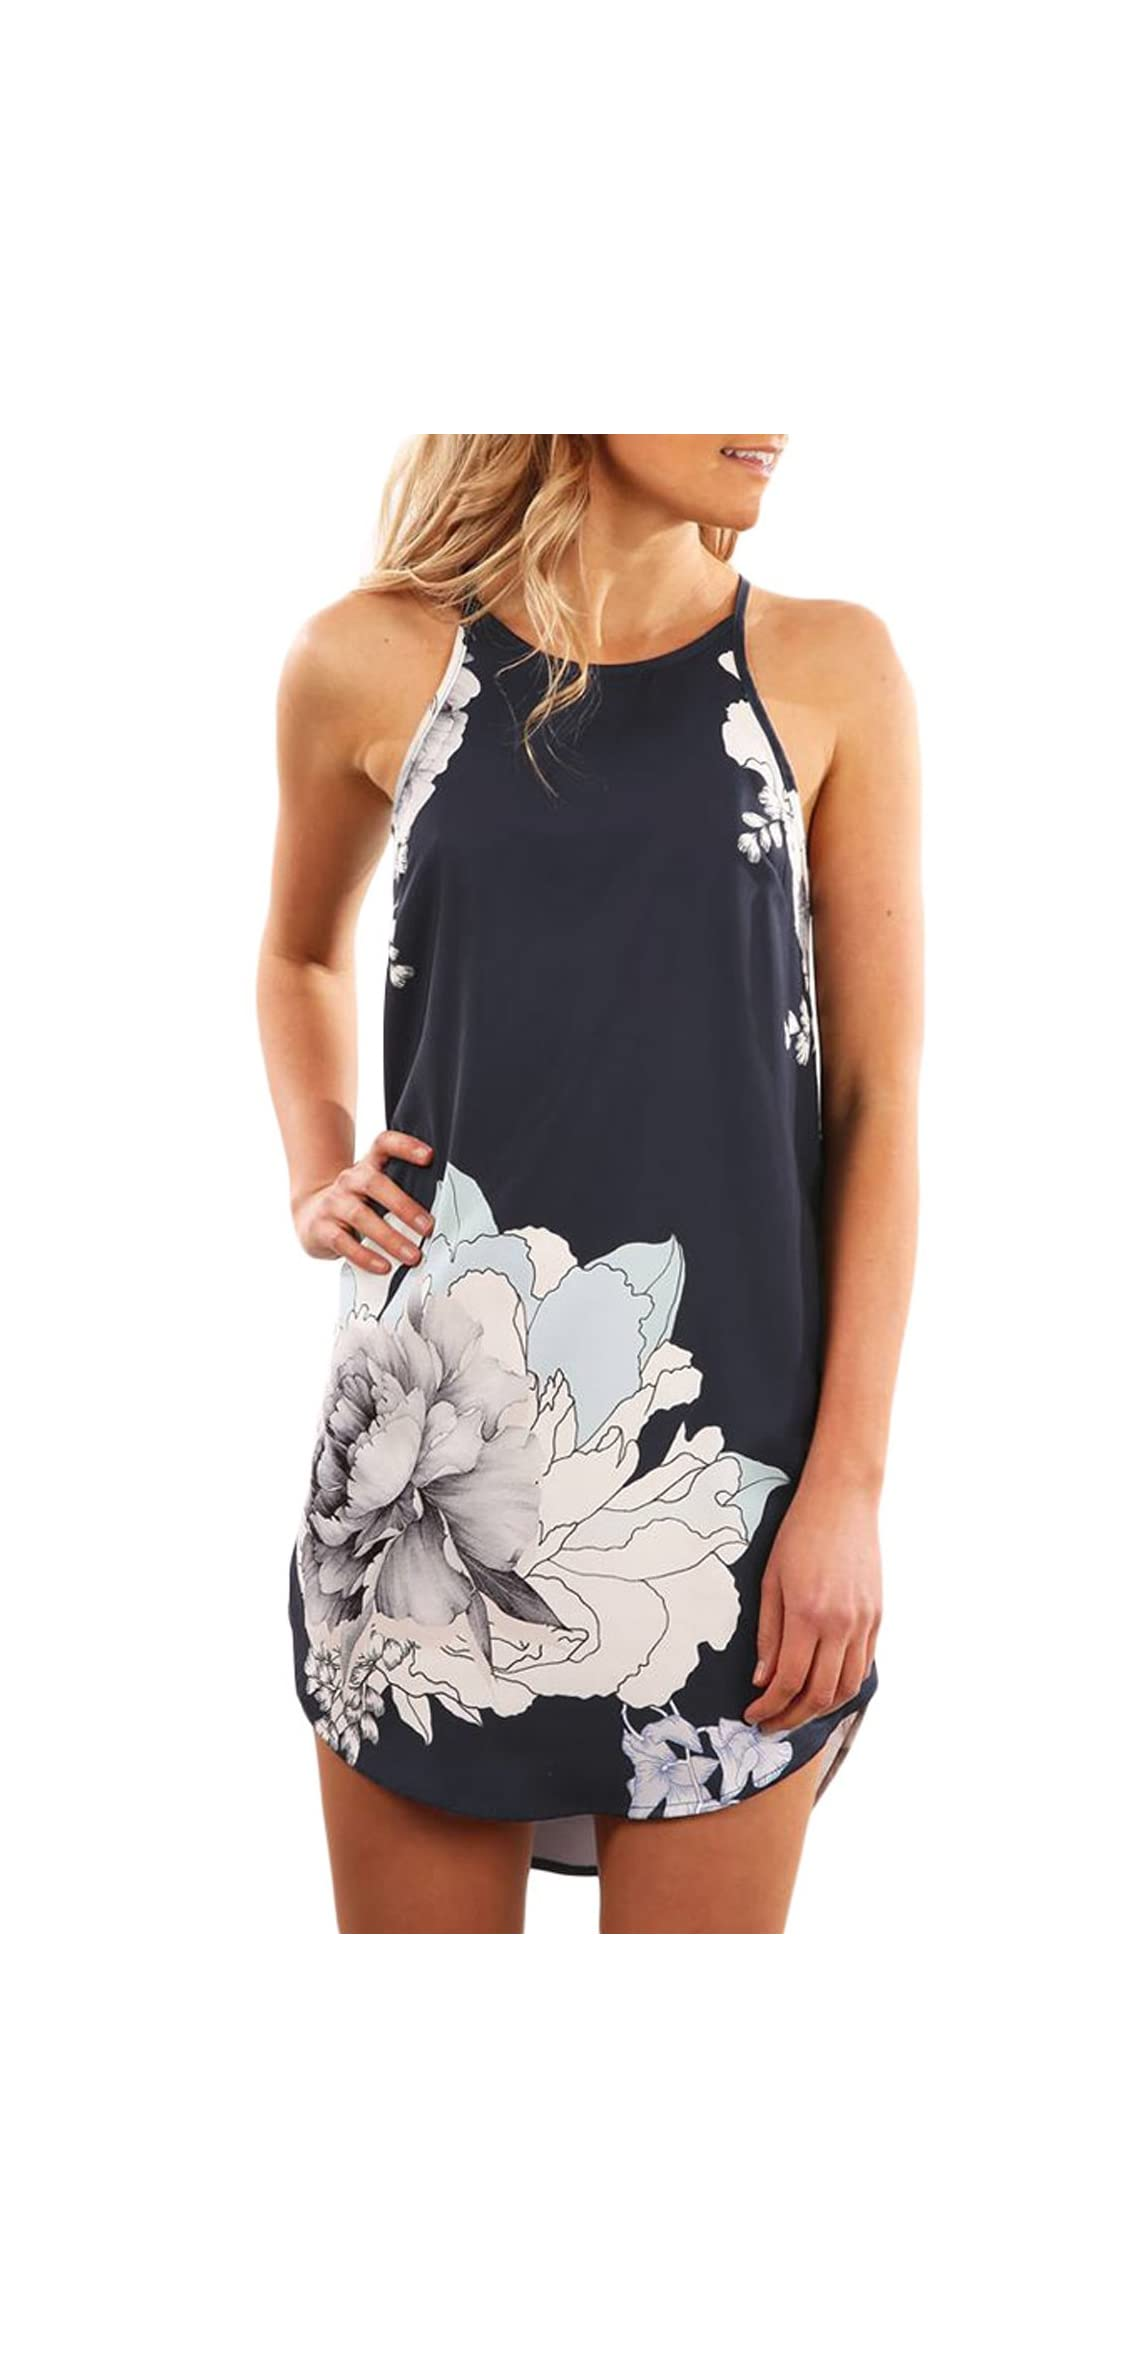 Womens Summer Halter Neck Floral Print Sleeveless Casual